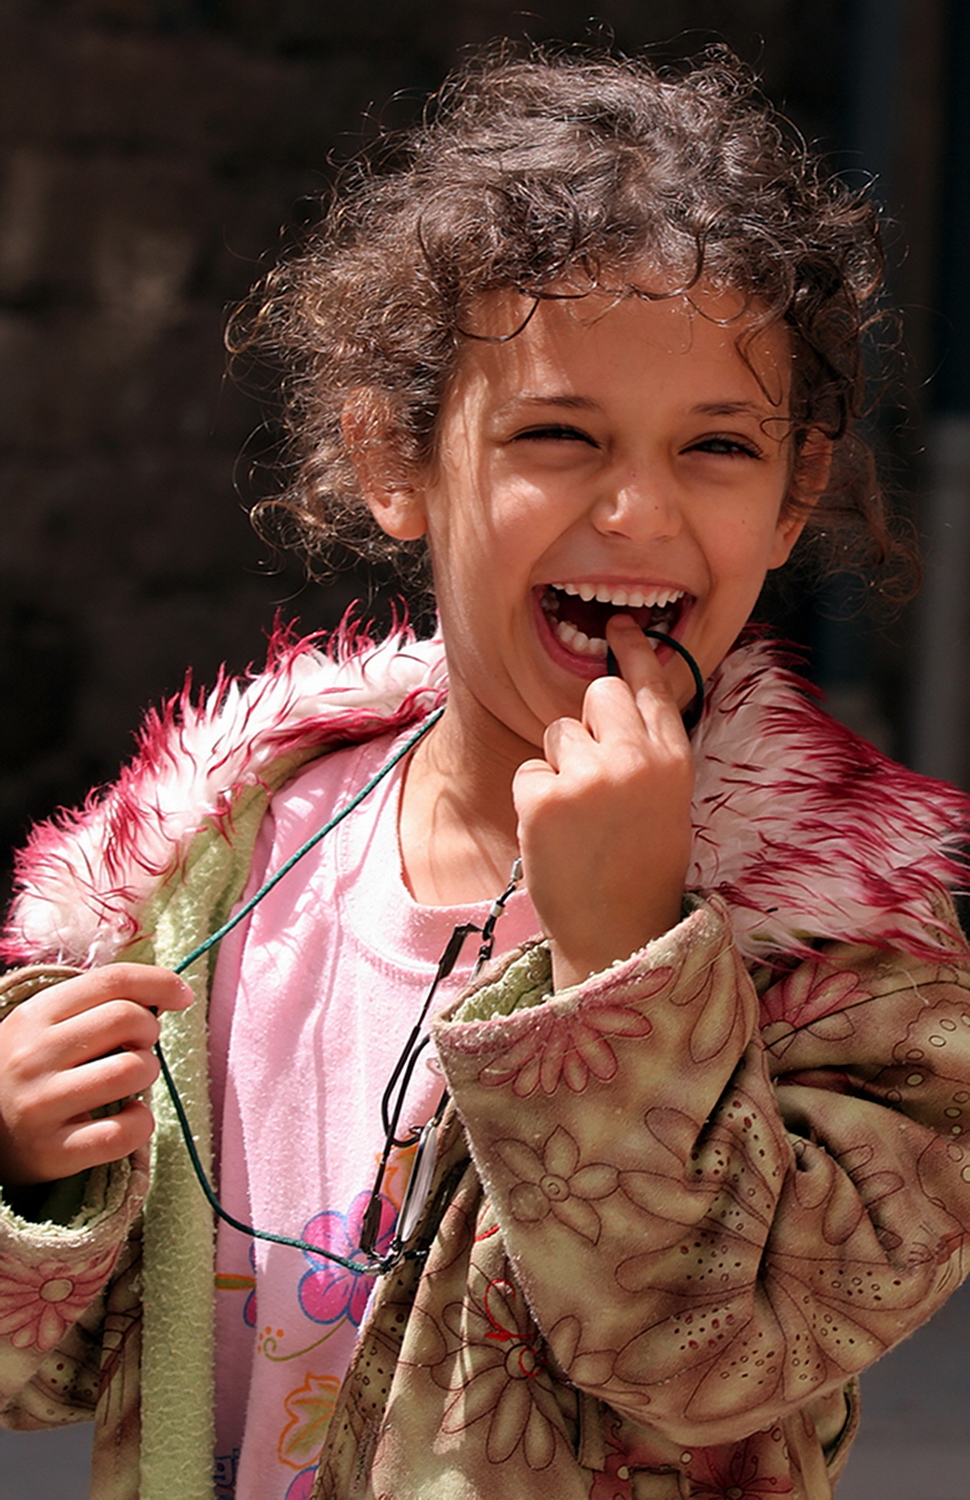 photomessenger - people - youngsters - 1.jpg